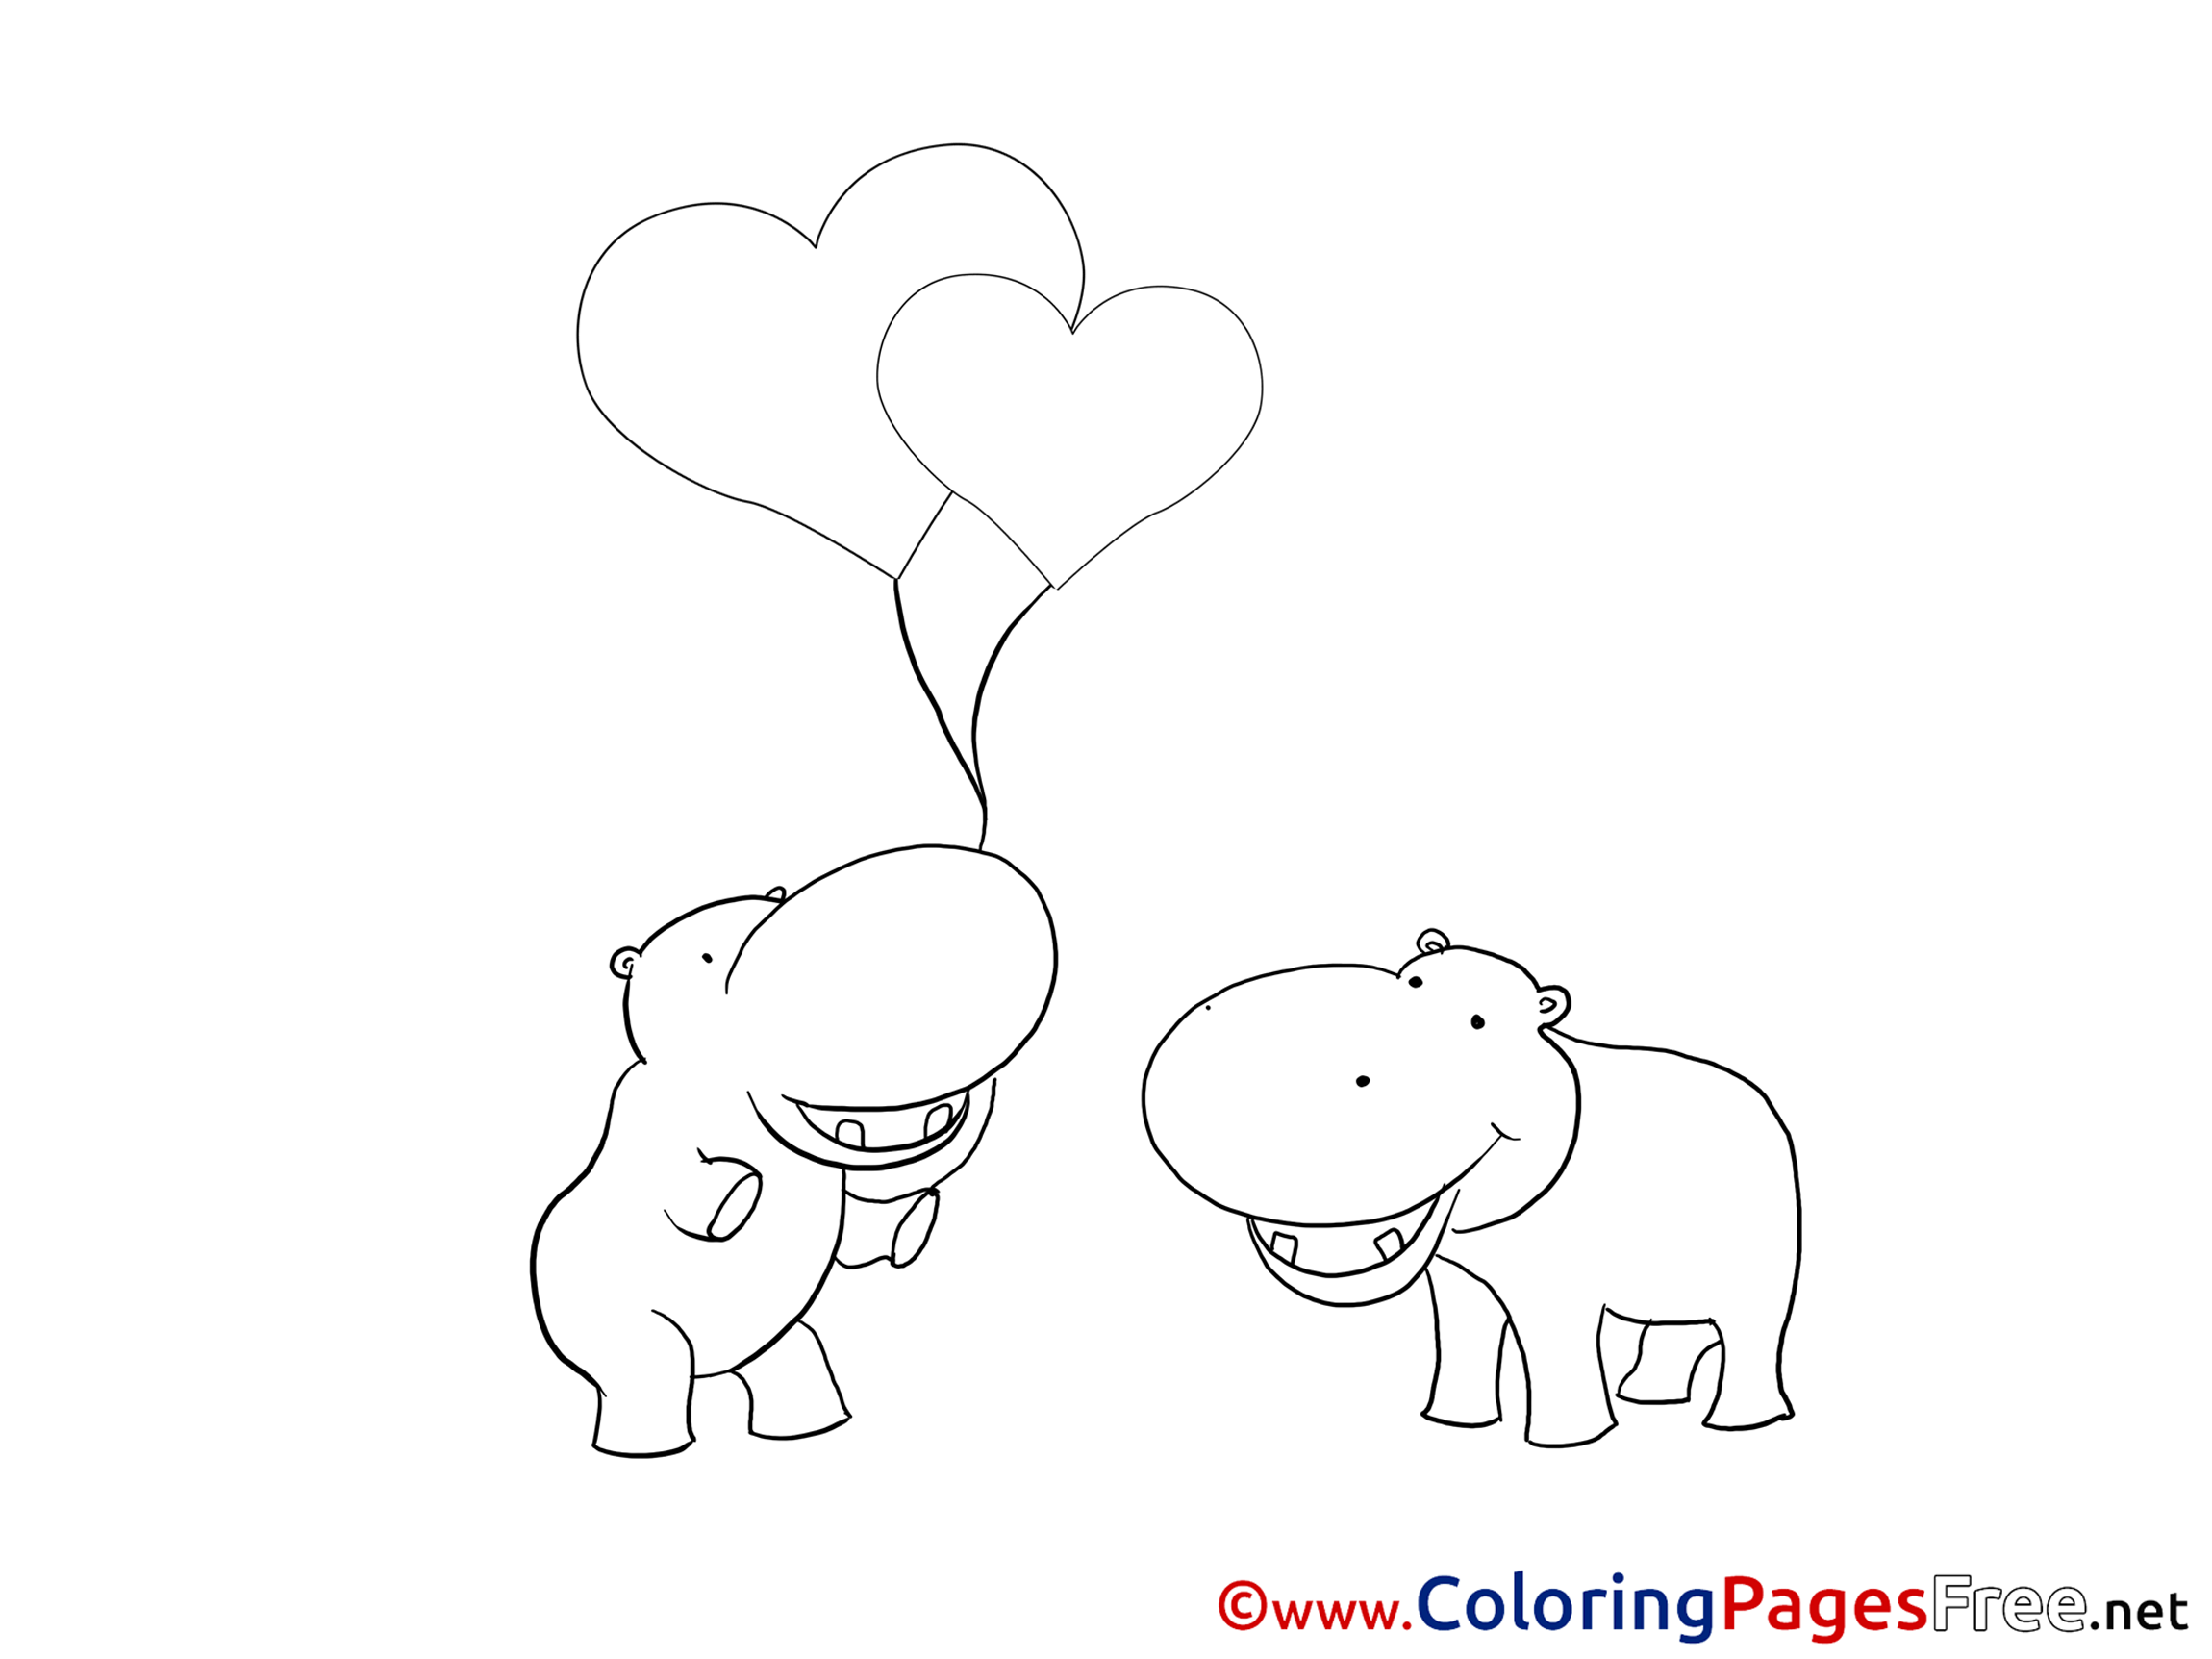 Valentines Color Pages HippoColorPrintable Coloring Pages Free